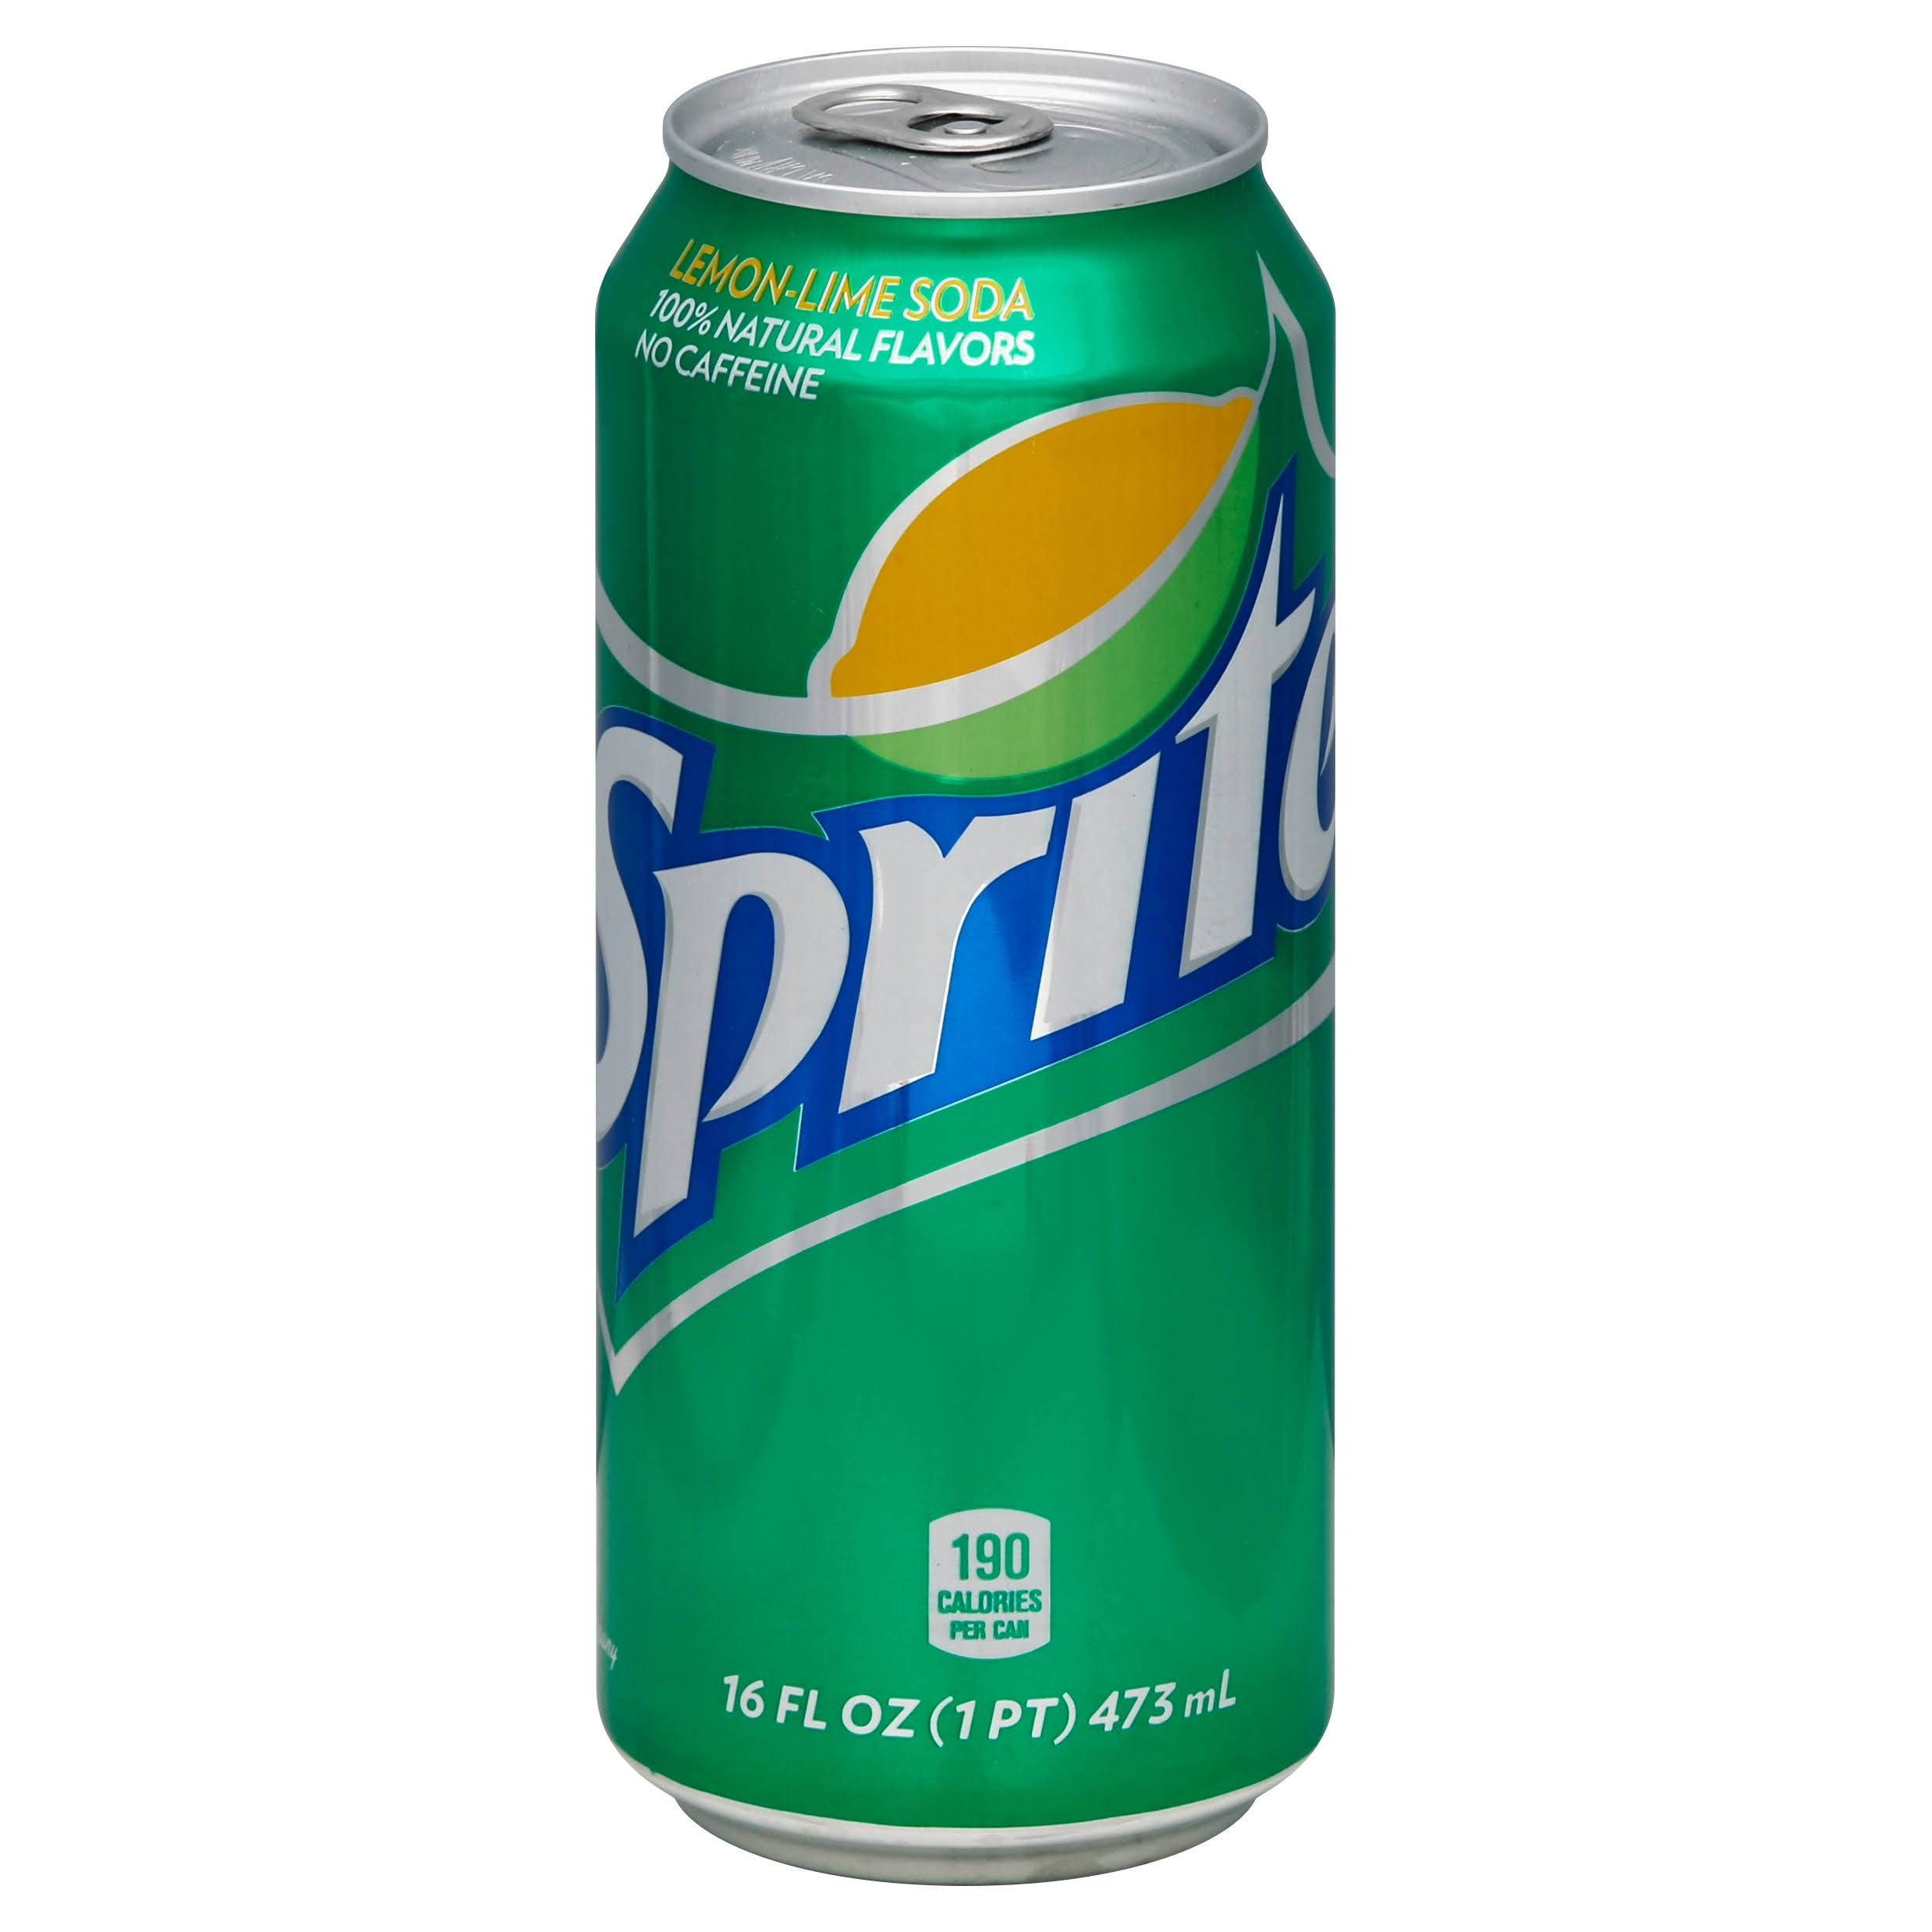 Sprite Soda - Lemon Lime, 16oz